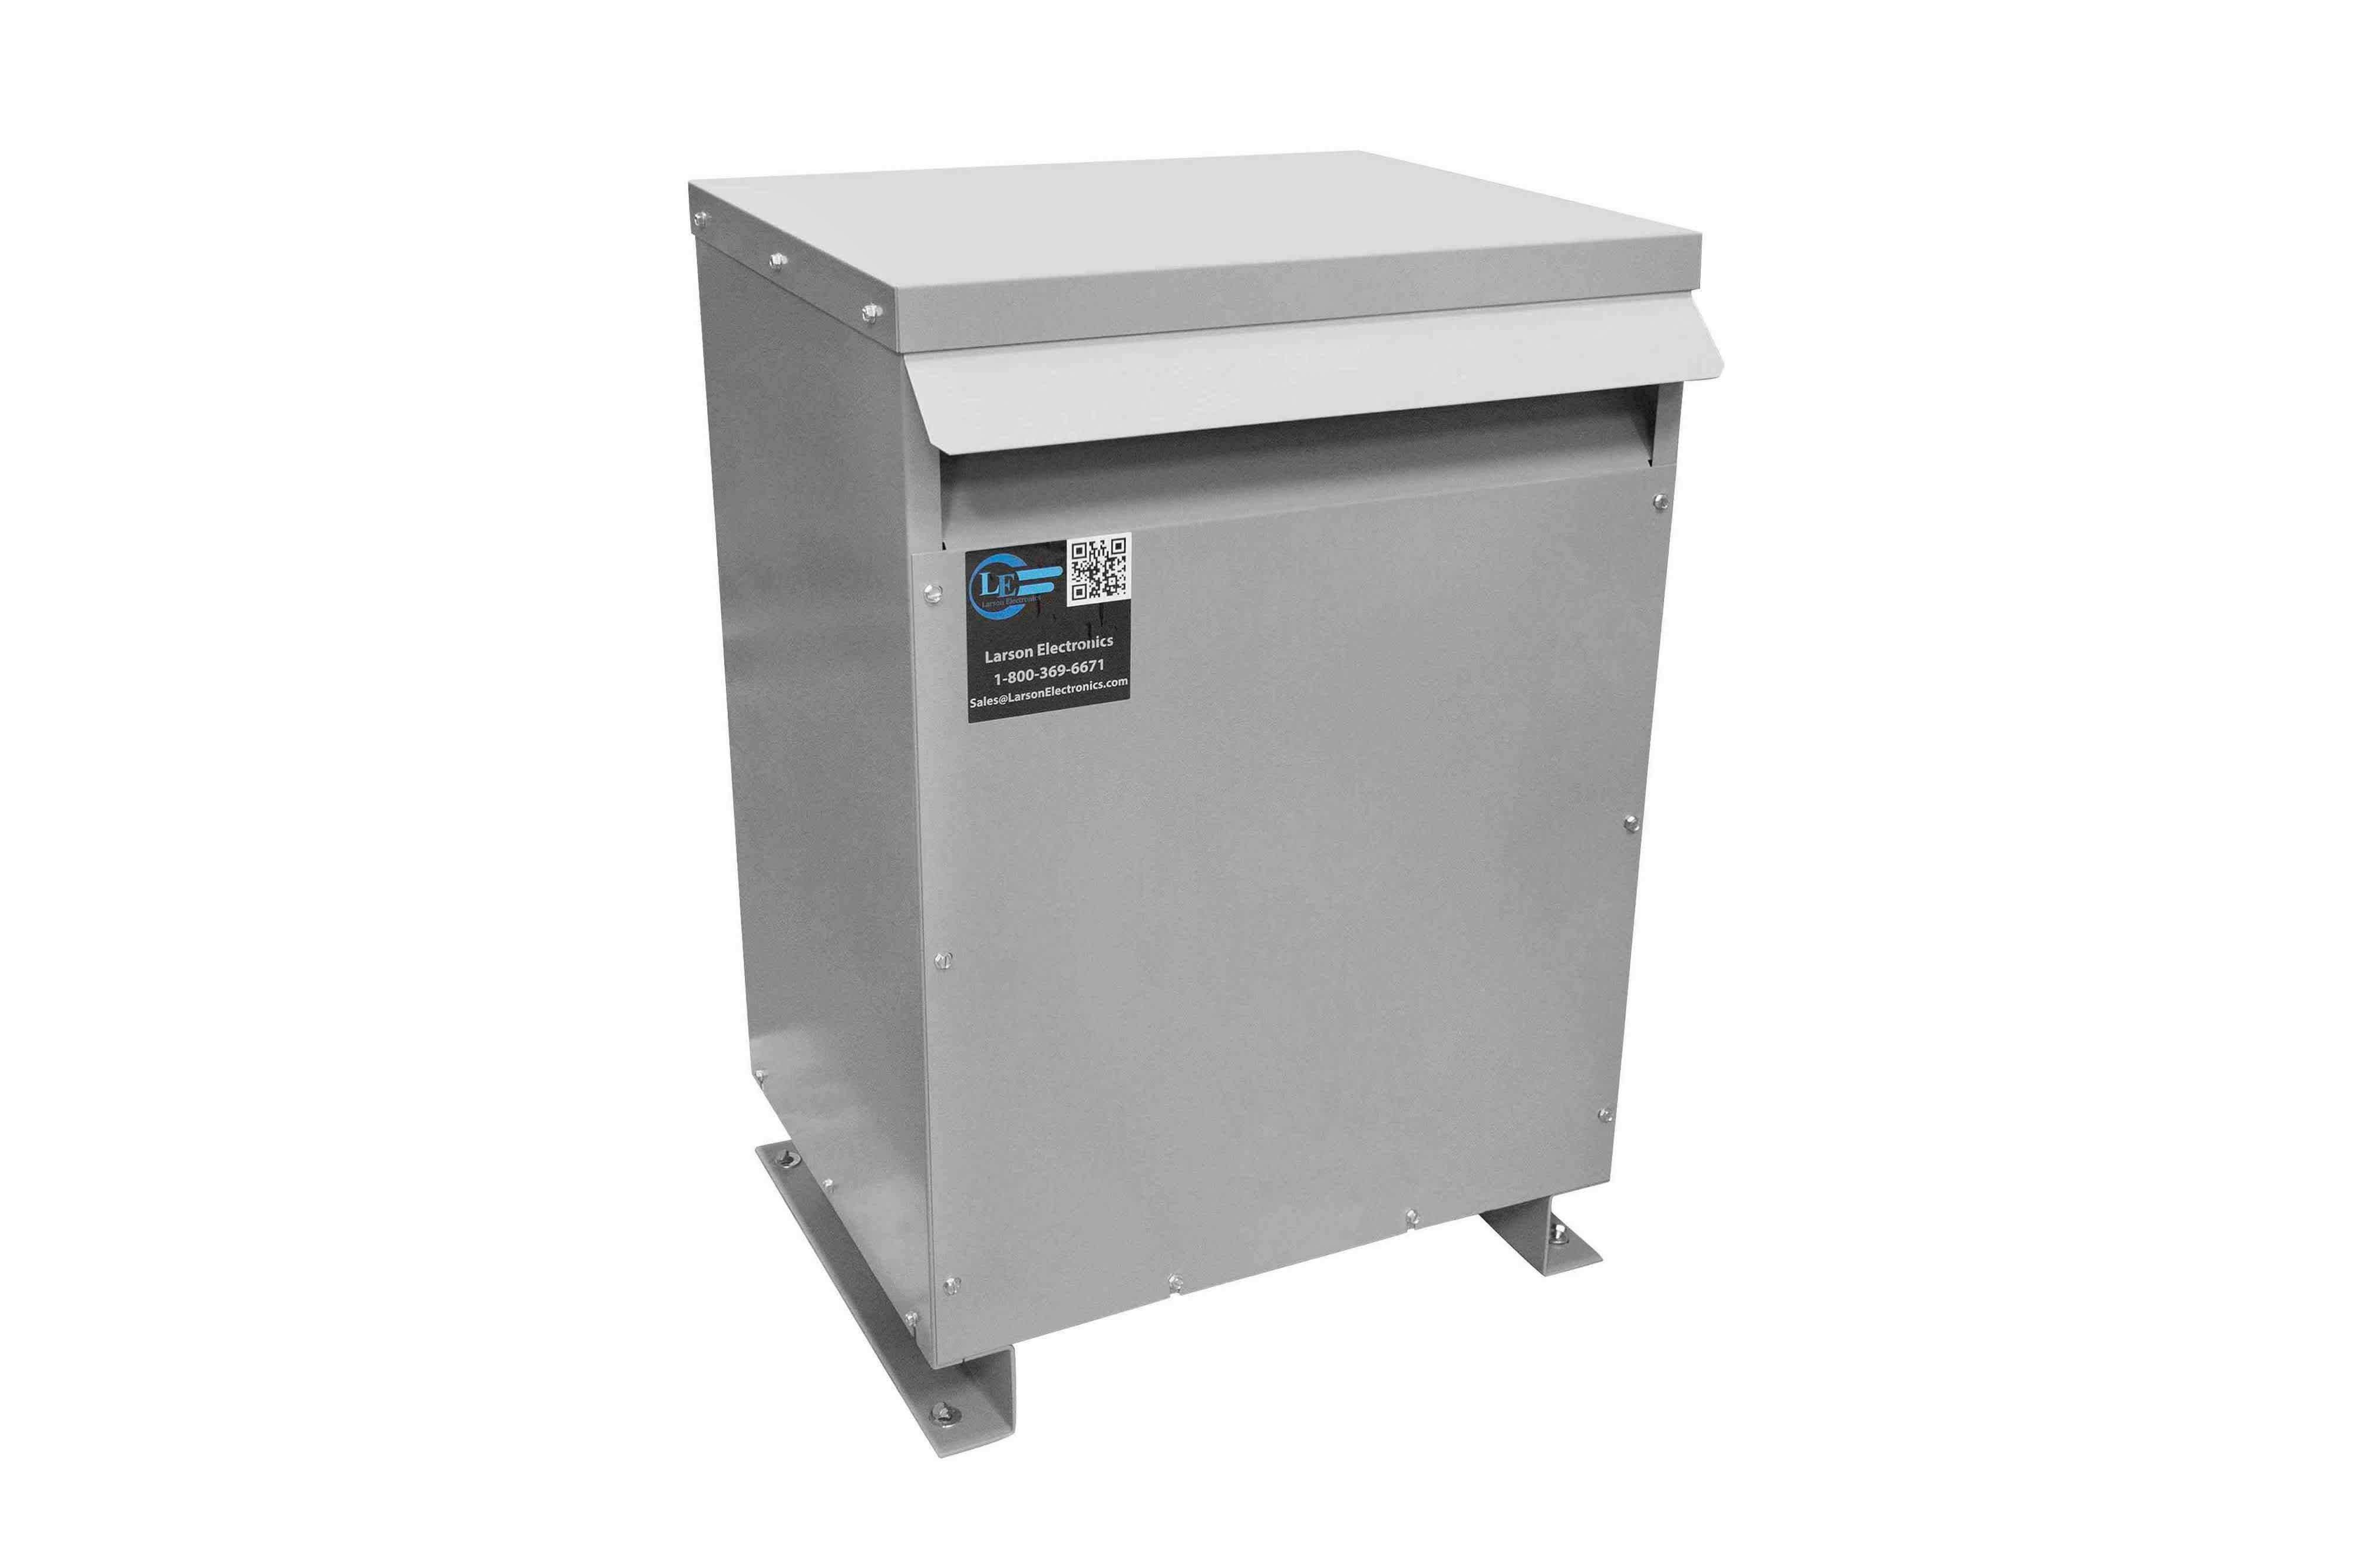 65 kVA 3PH Isolation Transformer, 480V Delta Primary, 400V Delta Secondary, N3R, Ventilated, 60 Hz